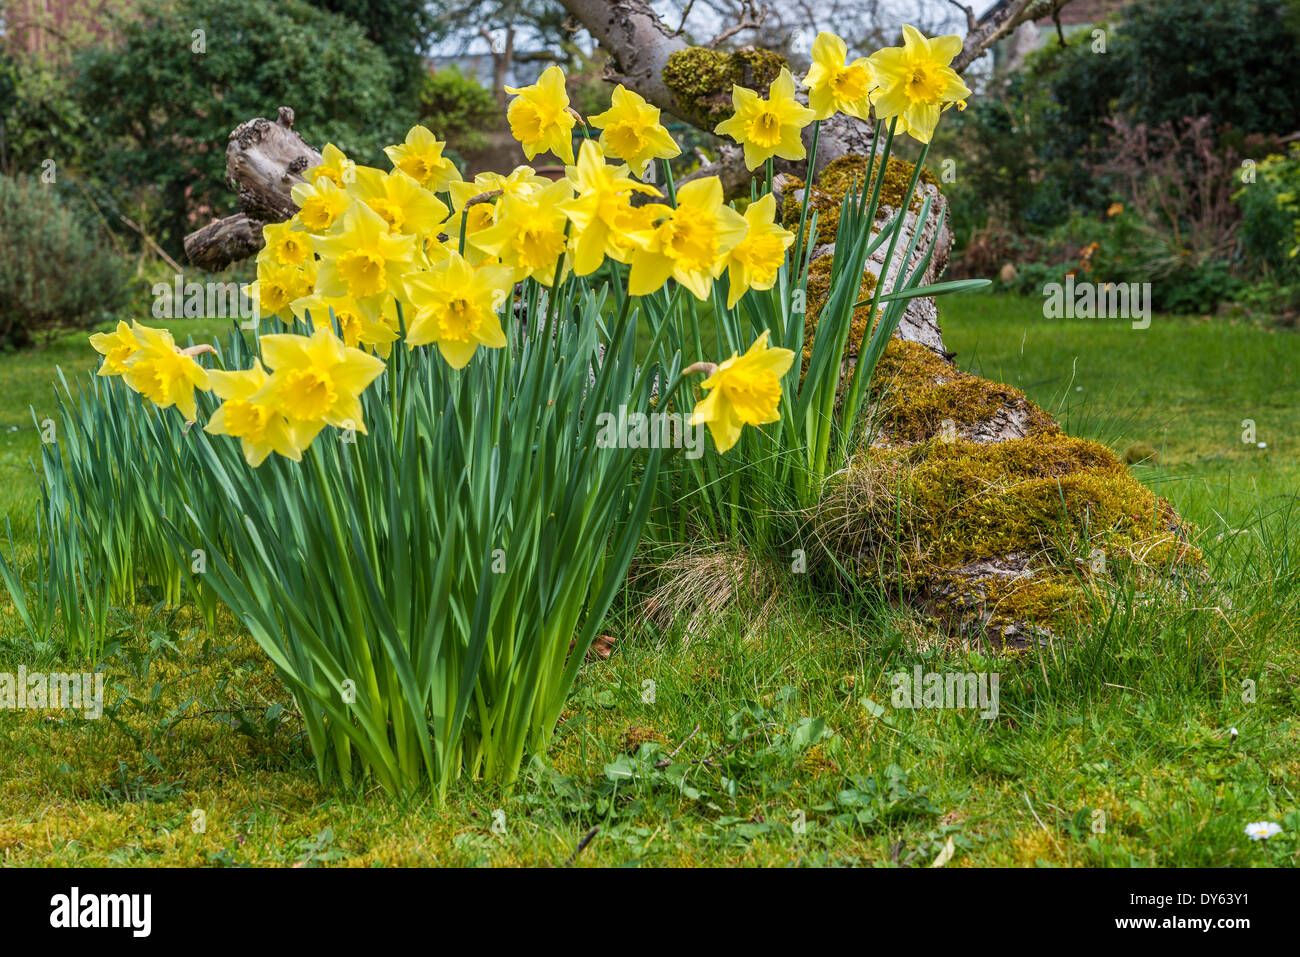 Daffodils growing in garden under old apple tree in spring. Tenth of sequence of 10 (ten) images photographed over five weeks. - Stock Image